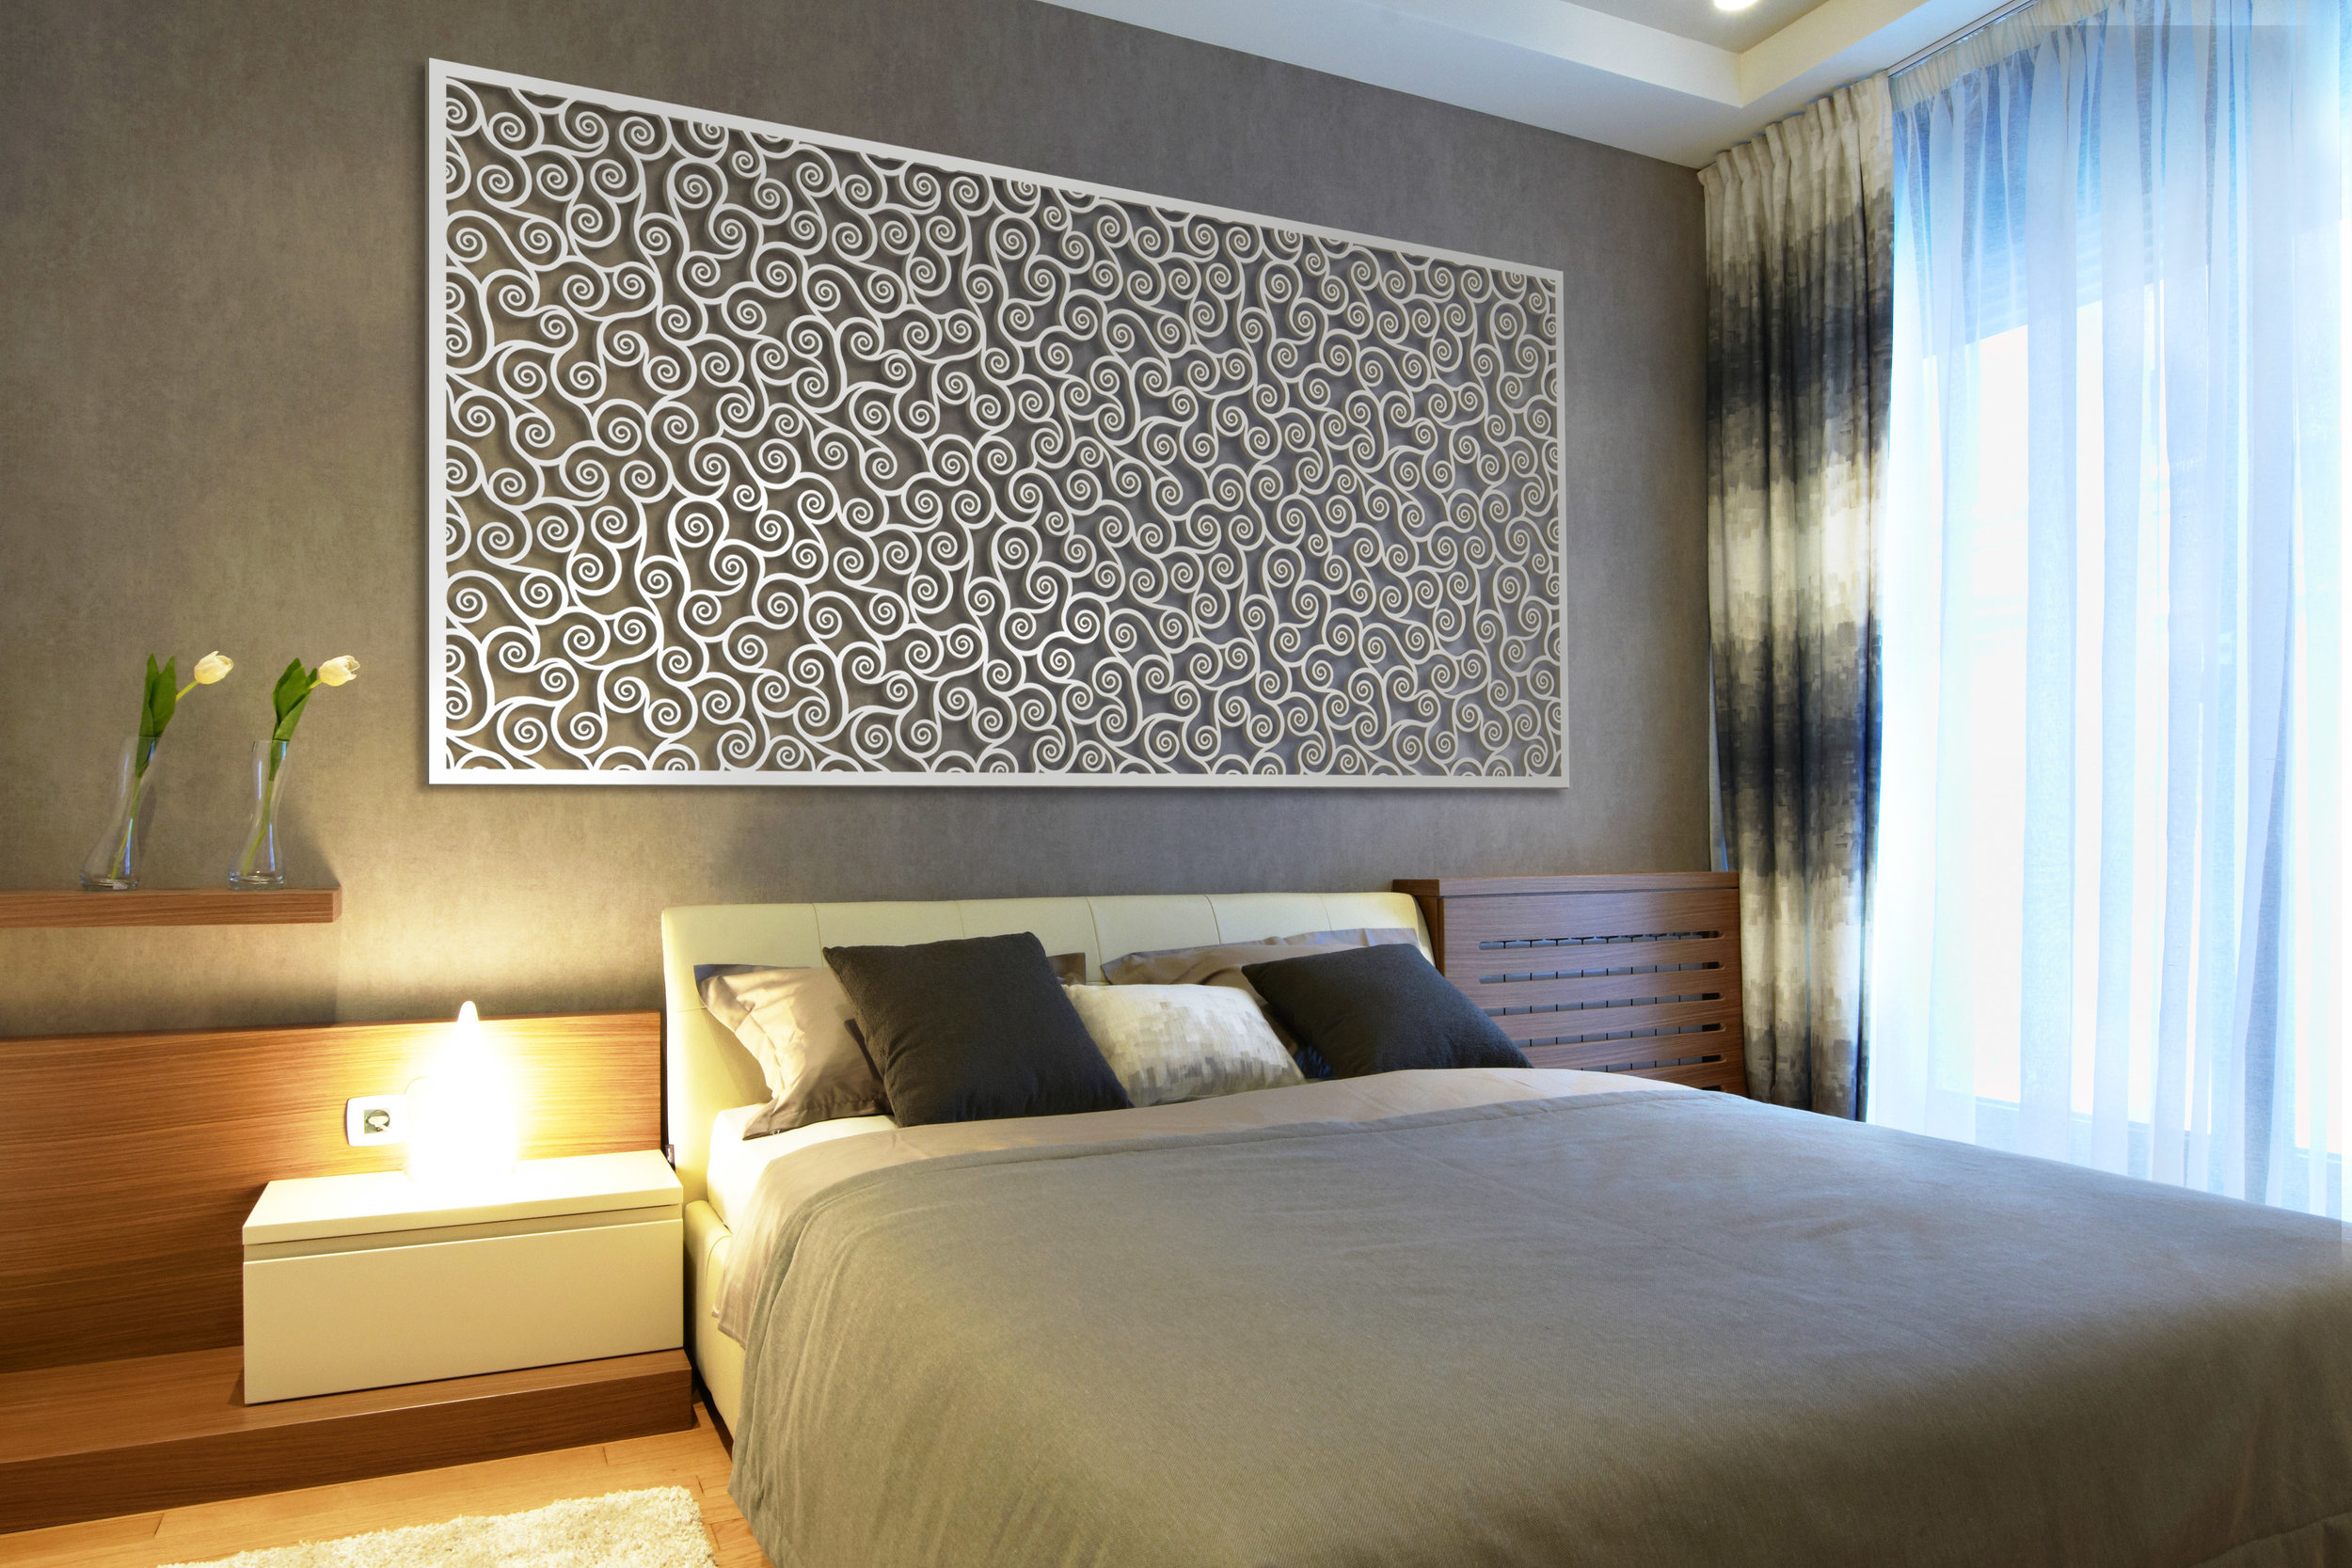 Installation Rendering C   Spirals 1 decorative hotel wall panel - painted